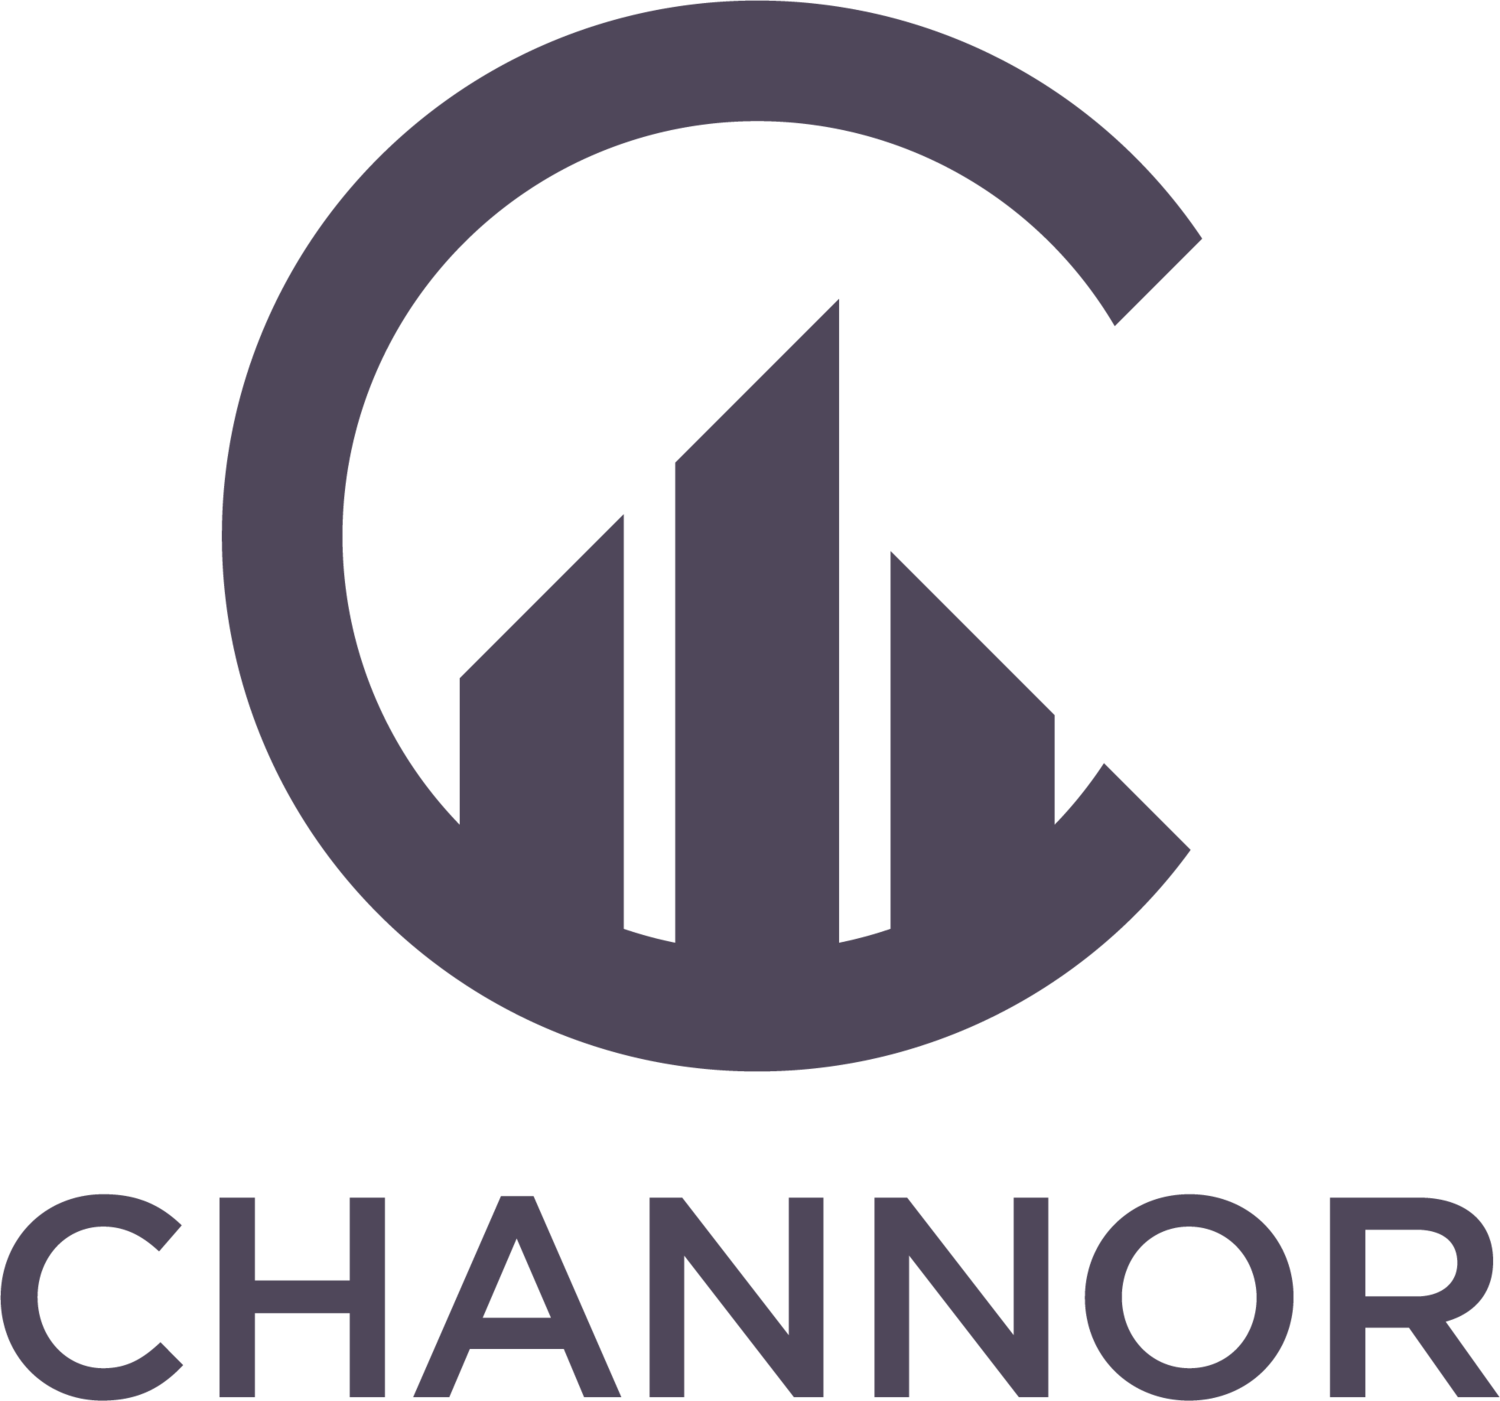 The Channor Group